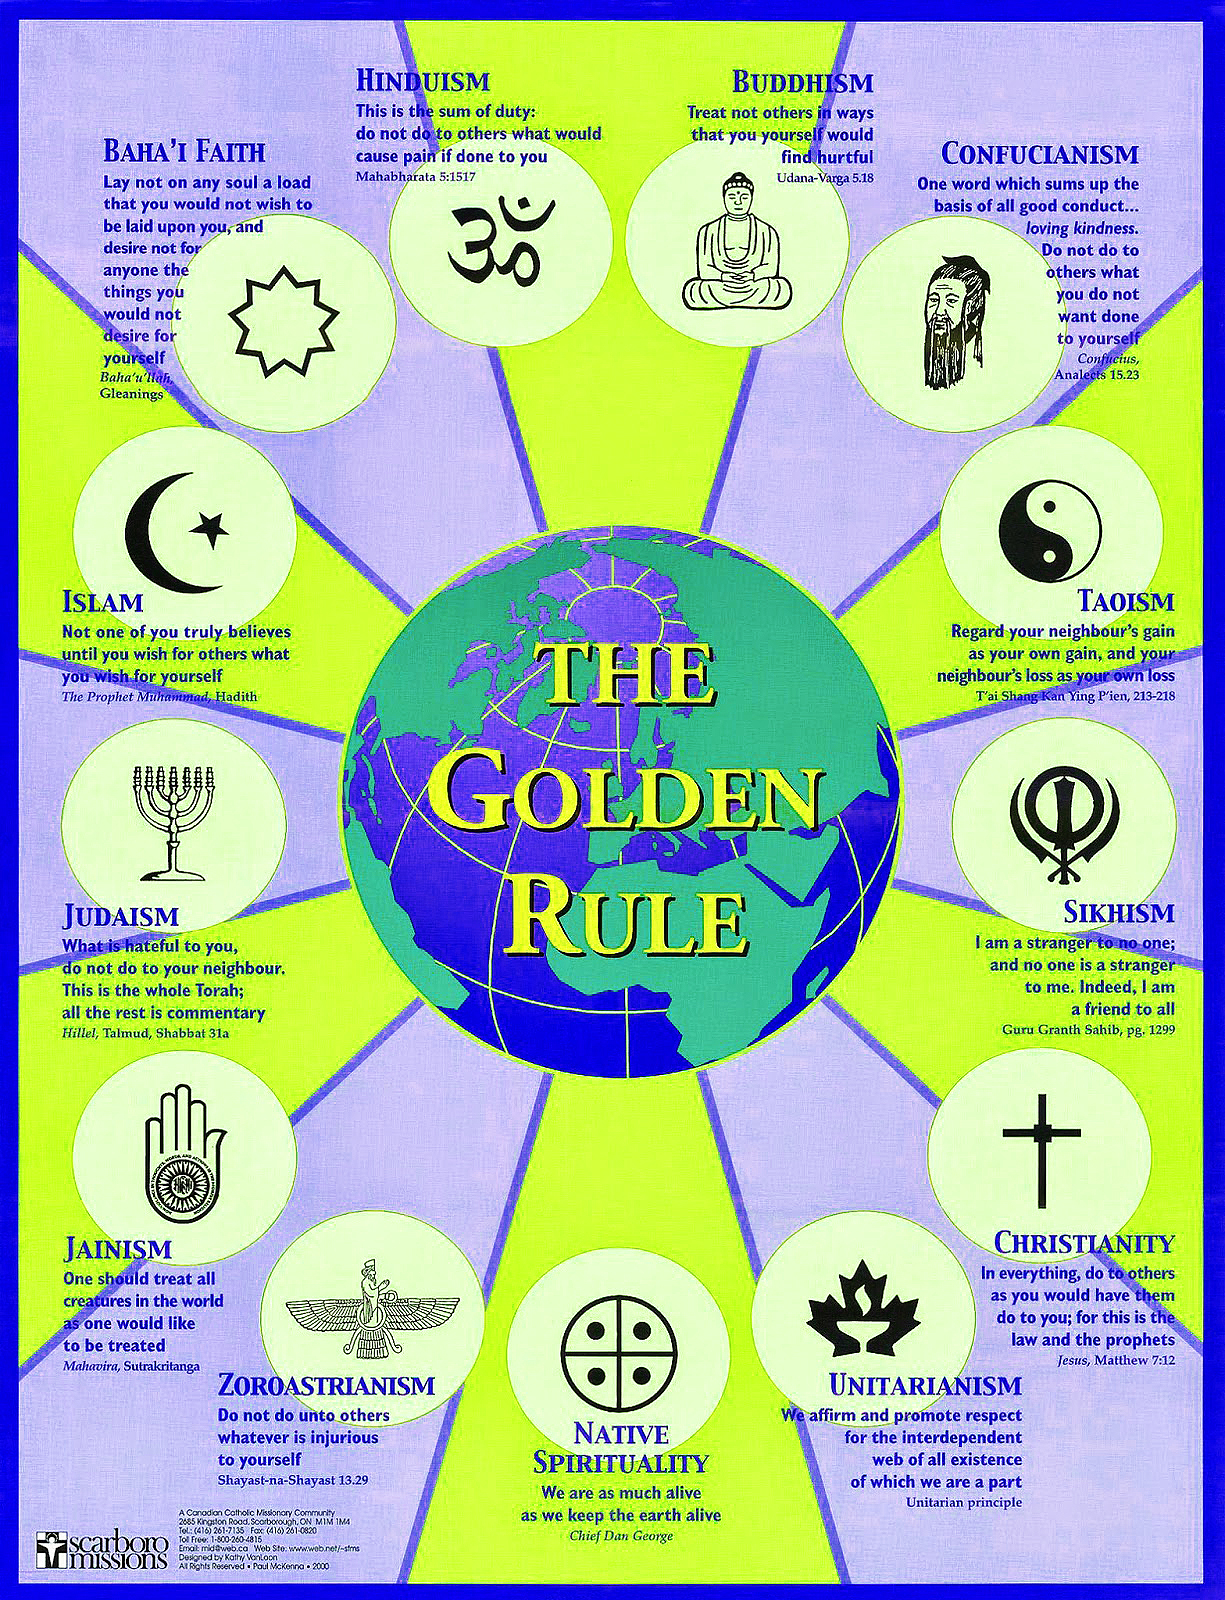 The-Common-Foundations-of-Religions-and-Theology-The-Golden-Rule.jpg